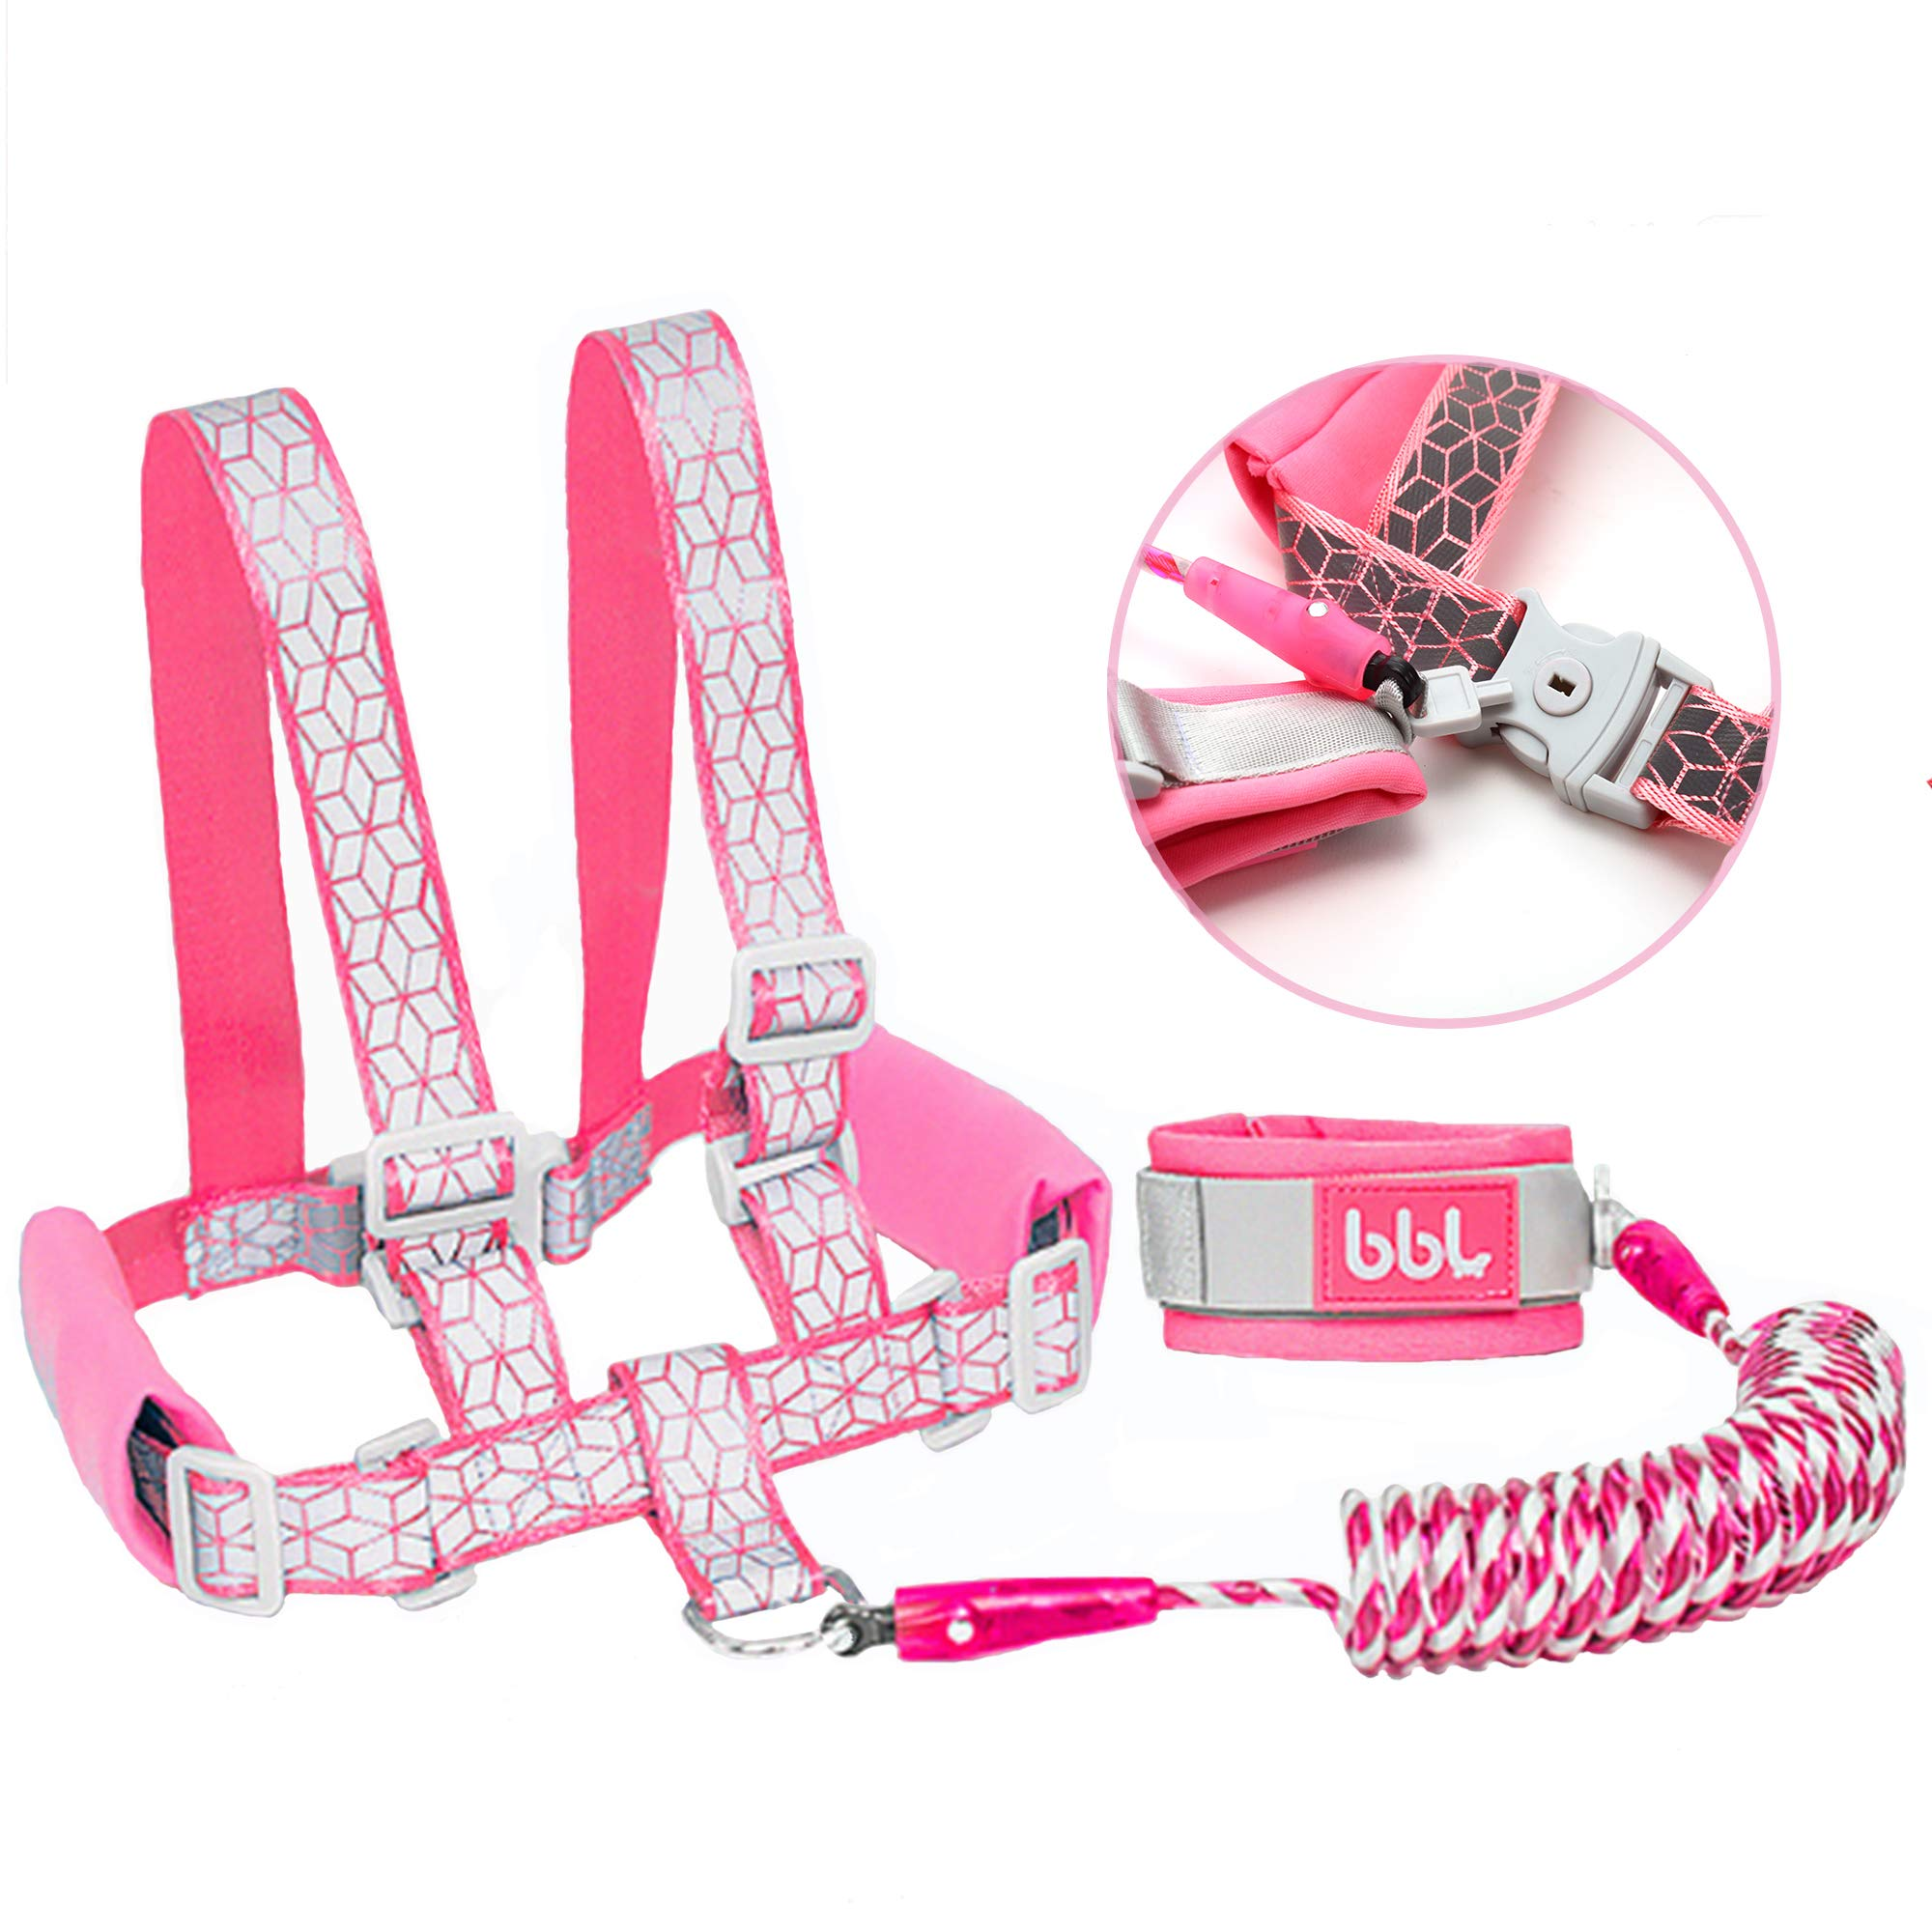 Toddler Harness Walking Leash- Child Anti Lost Wrist Link - Child Safety Harness - Upgrade with Reflective Tape Liner(6.5ft)- for 1-12 Years Boys and Girls to Disneyland, Zoo or Mall (Pink Leash)